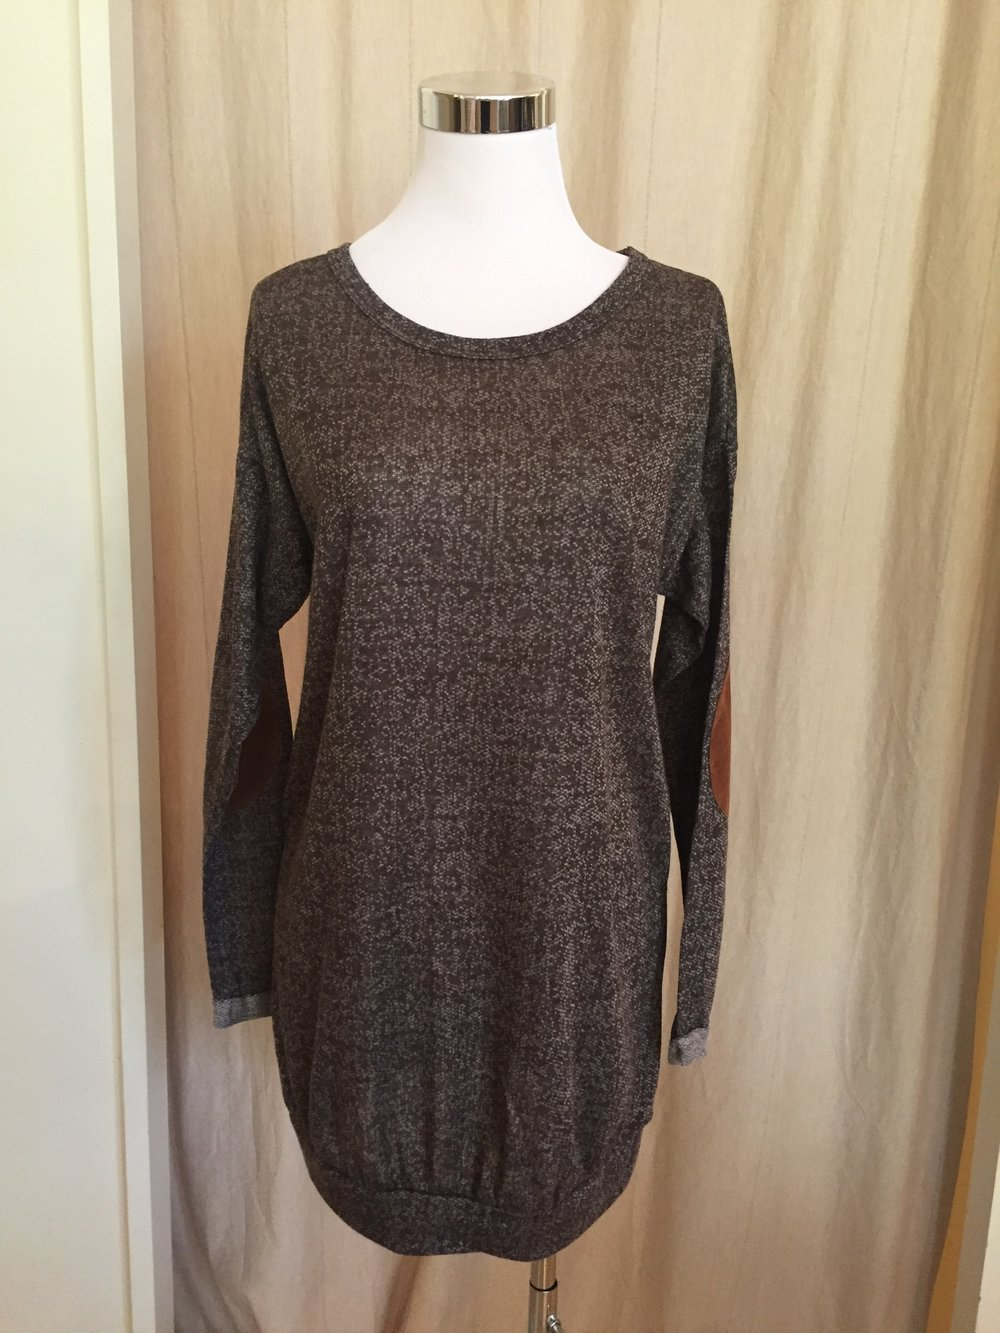 Brown Heathered Sweater Tunic, $38